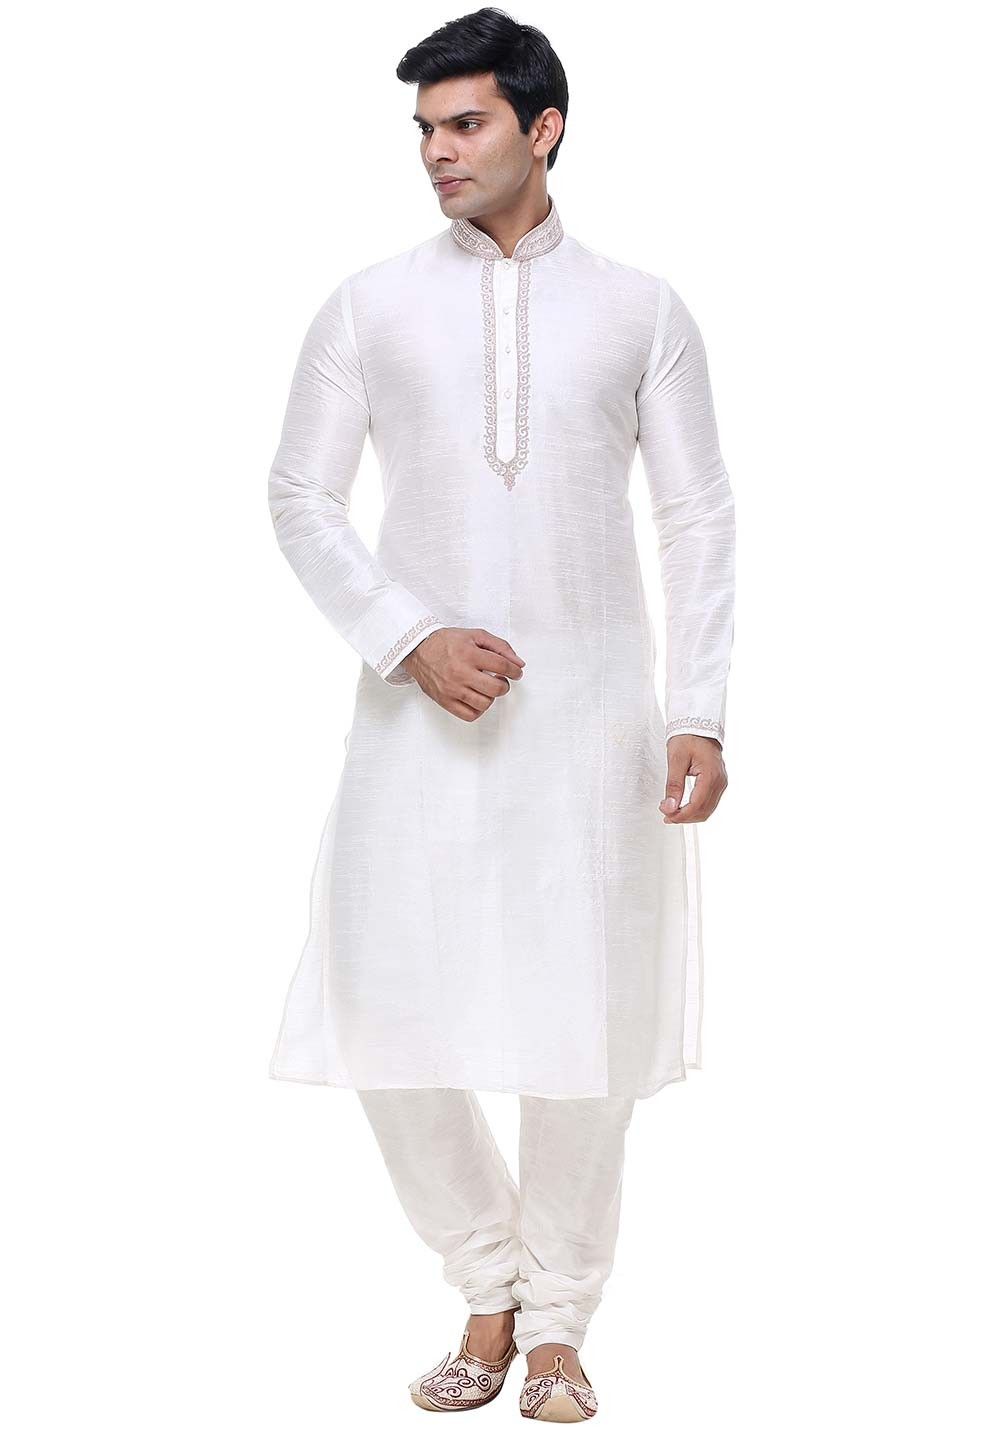 Off White Color Silk Kurta Pajama.